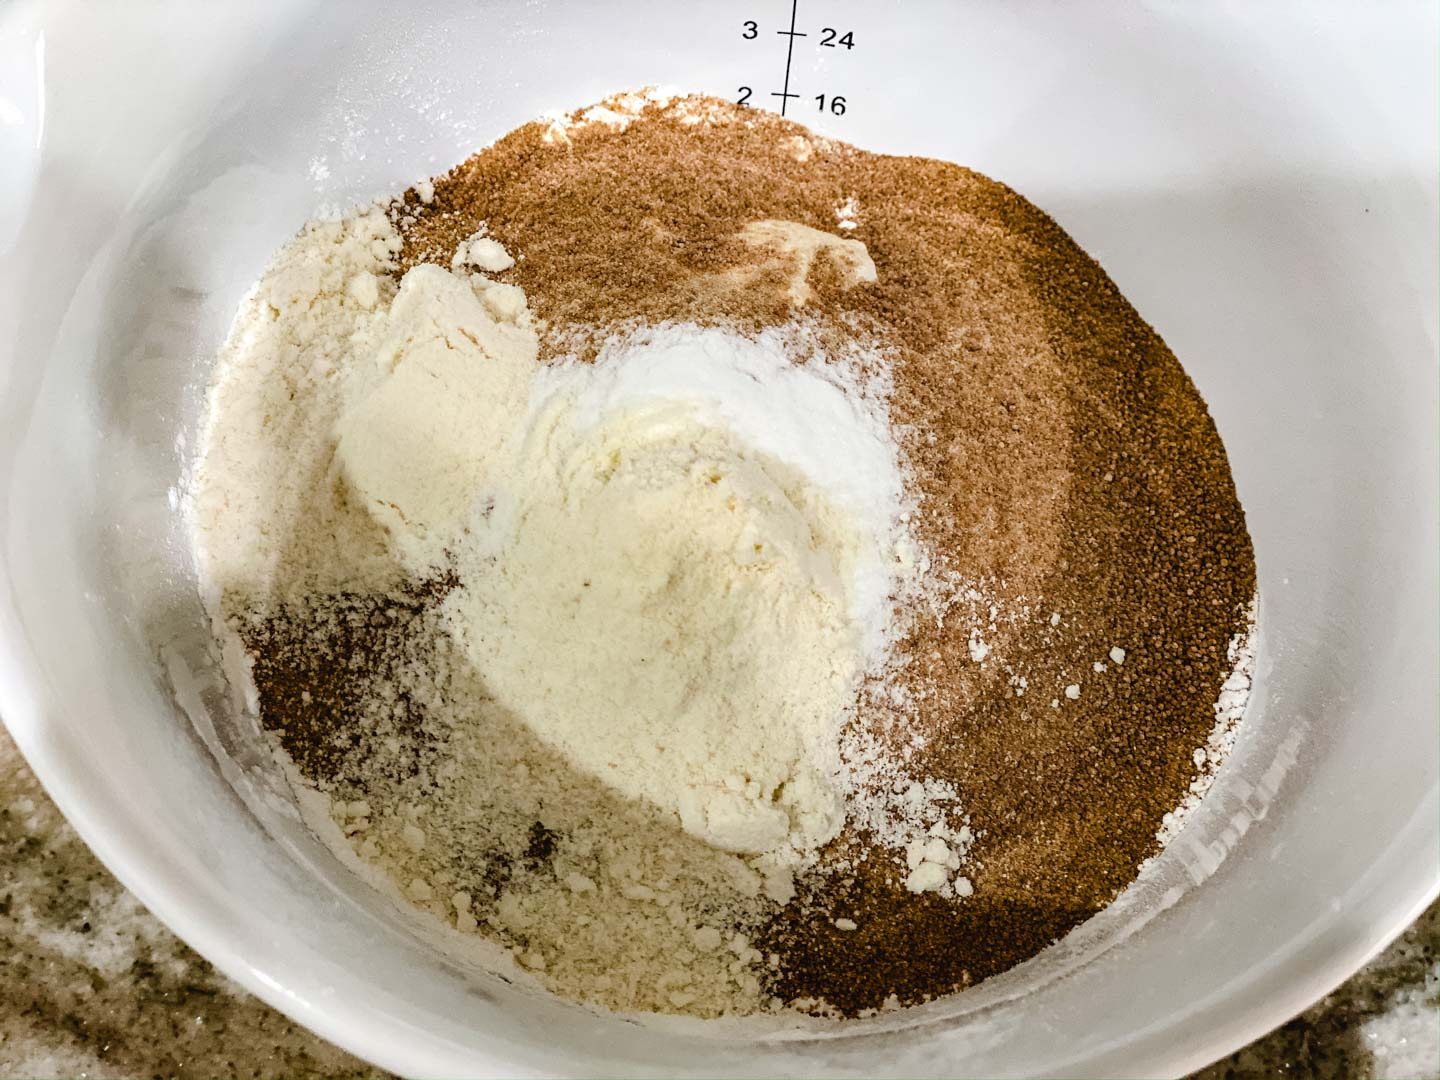 Dry ingredients in a white bowl.